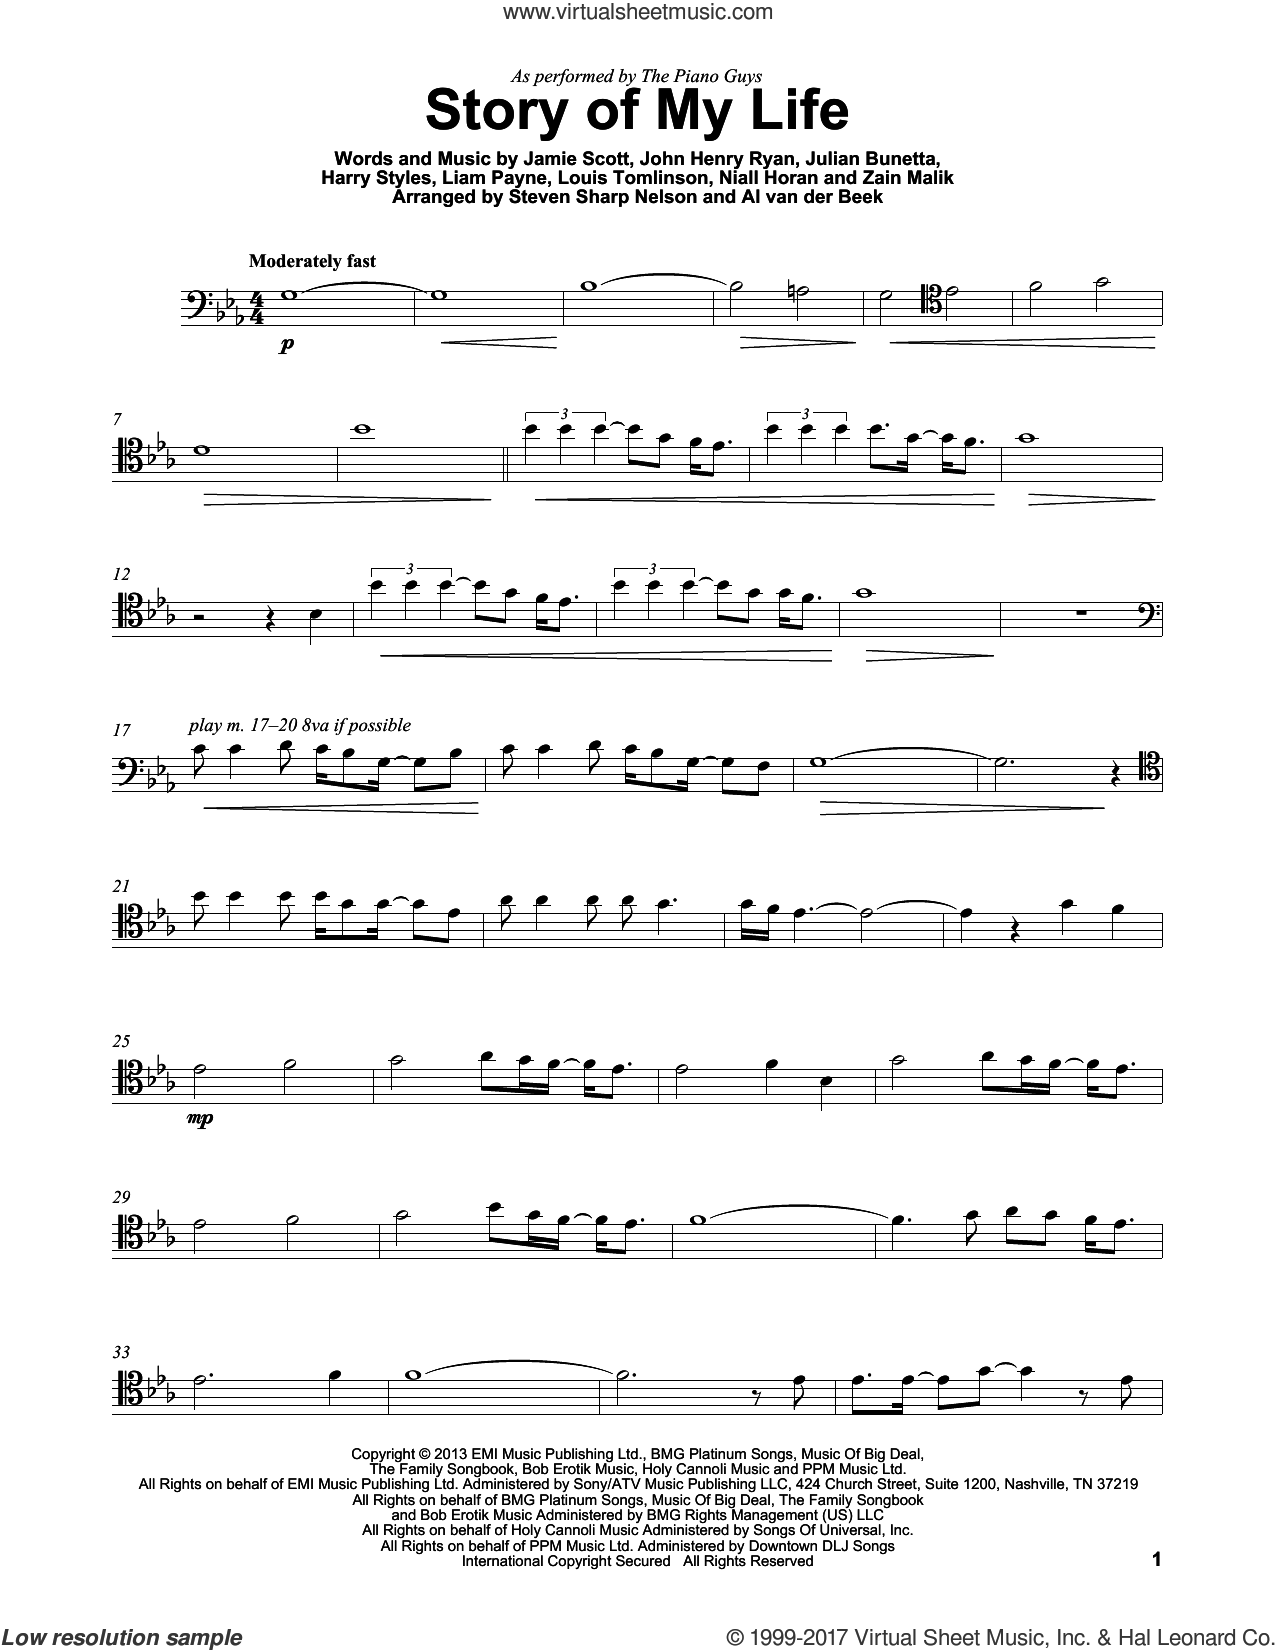 Story Of My Life sheet music for cello solo by The Piano Guys, One Direction, Harry Styles, Jamie Scott, John Henry Ryan, Julian Bunetta, Liam Payne, Louis Tomlinson, Niall Horan and Zain Malik, intermediate skill level